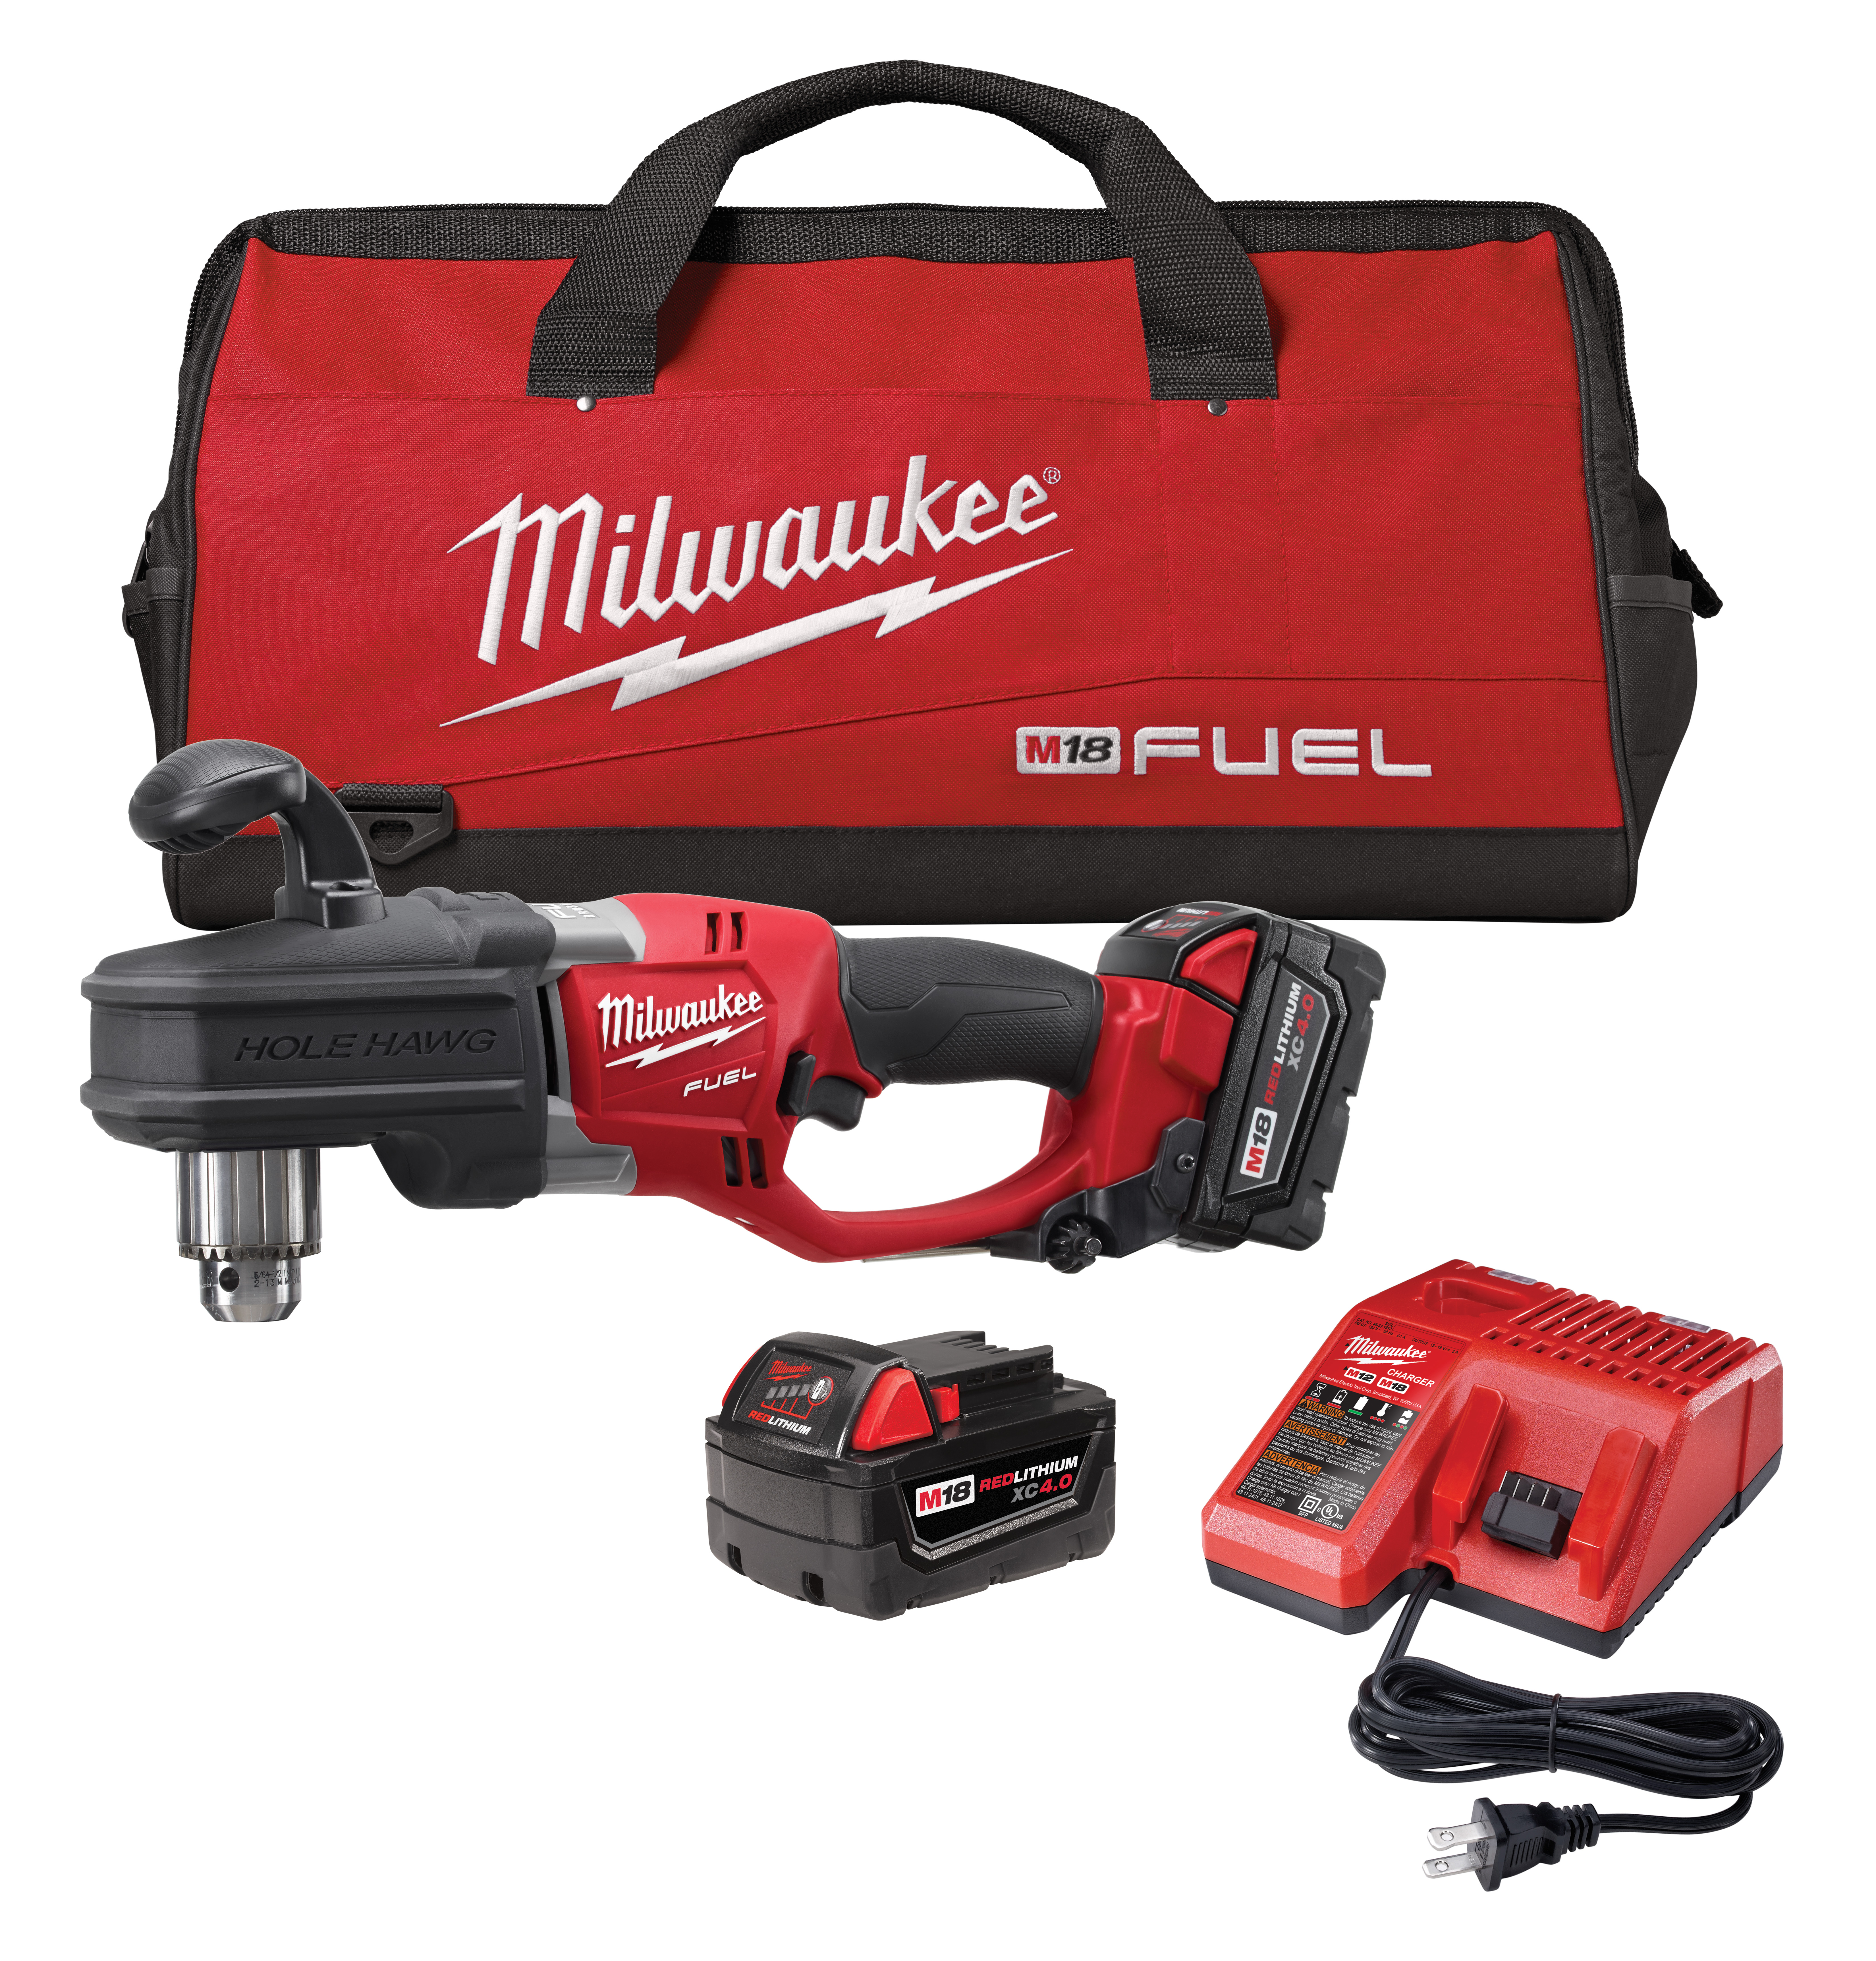 Milwaukee® M18™ FUEL™ 2707-22 HOLE HAWG® Cordless Right Angle Drill Kit, 1/2 in Keyed Chuck, 18 VDC, 650 ft-lb Torque, 0 to 1200 rpm No-Load, 17 in OAL, Lithium-Ion Battery